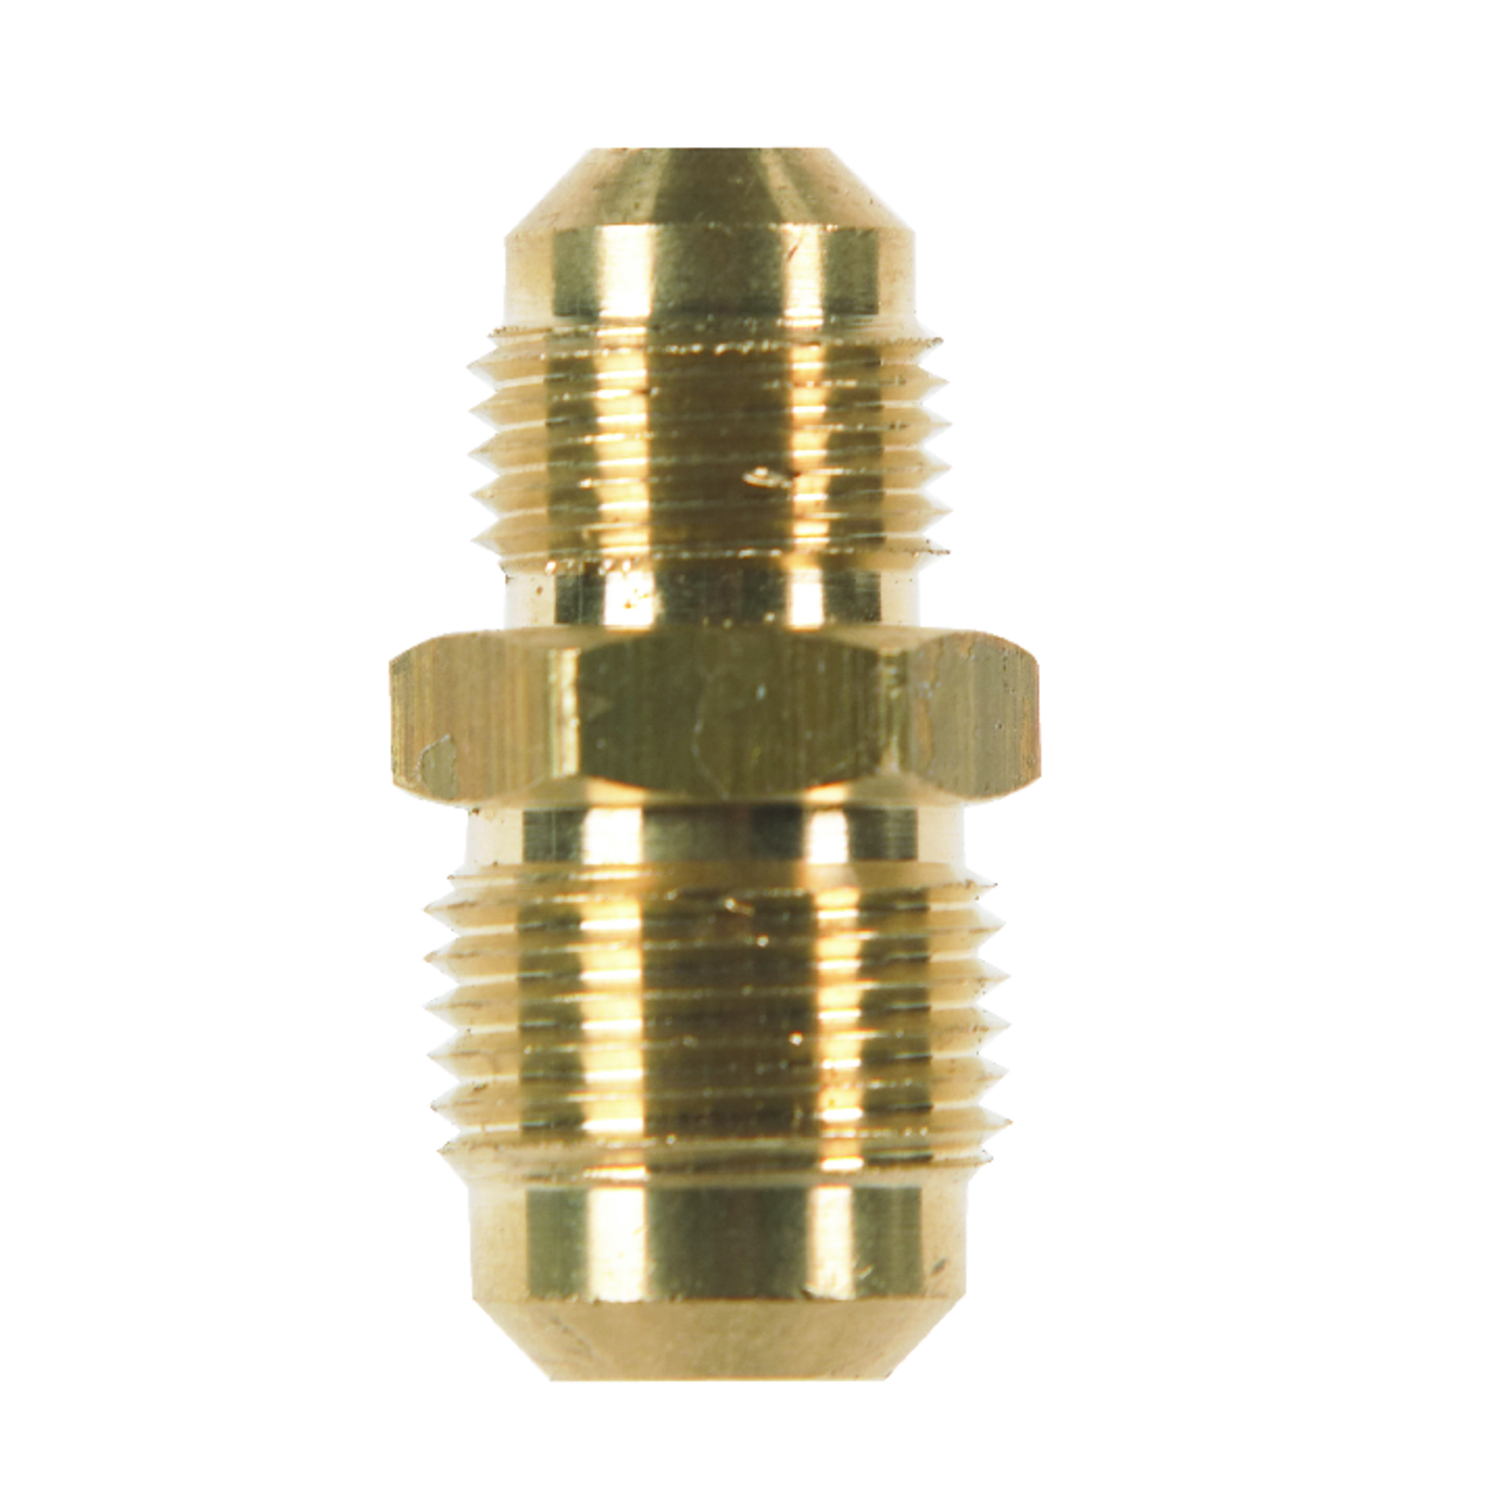 JMF  1/2 in. Dia. x 3/8 in. Dia. Flare To Flare To Flared  Yellow Brass  Reducing Union